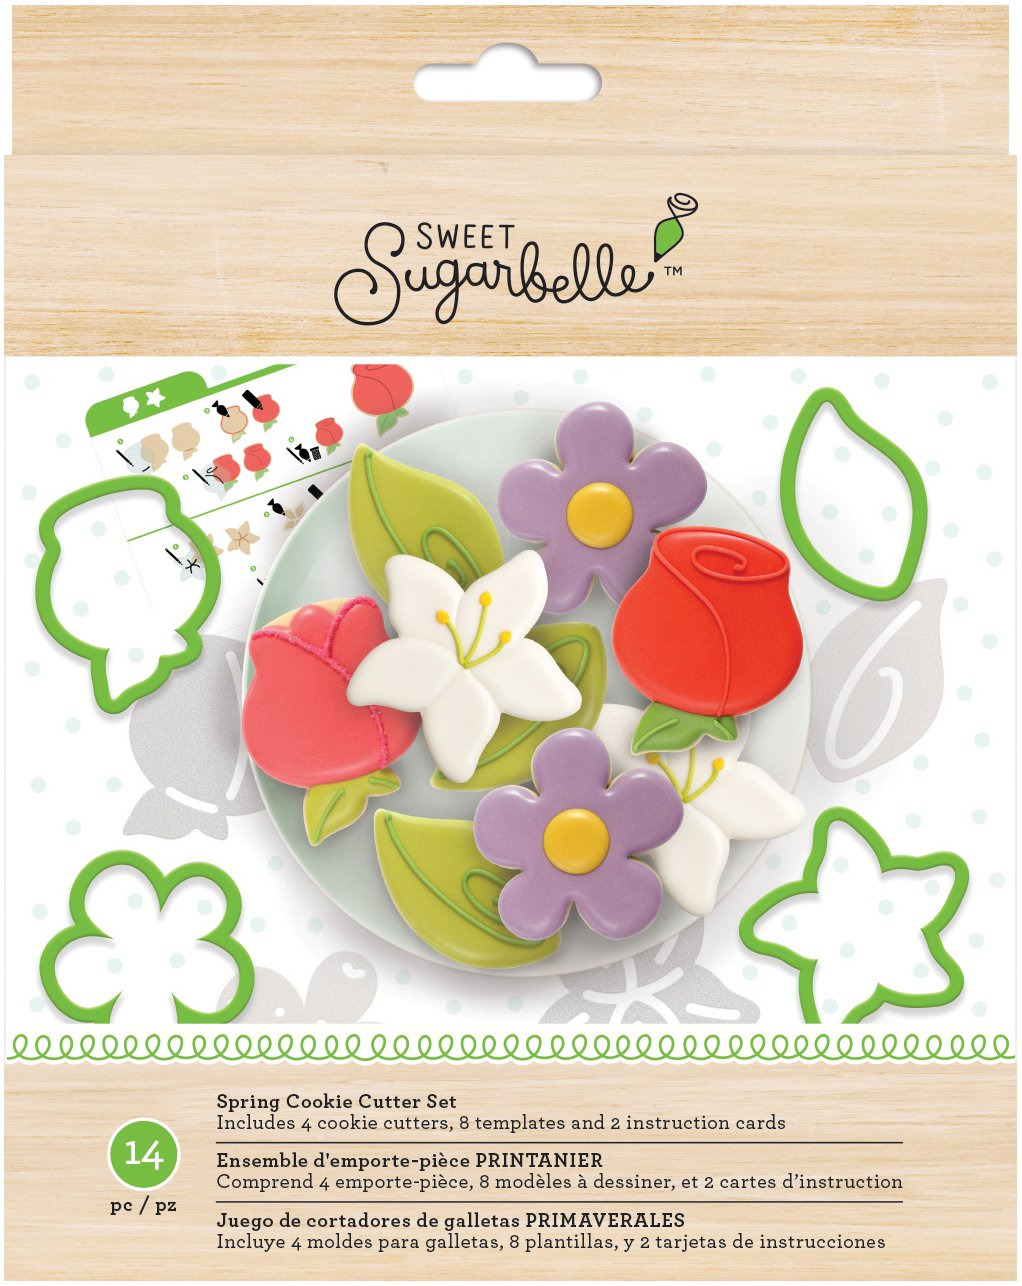 Amazon.com: American Crafts Sweet Sugarbelle 14 Piece Spring Cookie Cutter Set: Arts, Crafts & Sewing